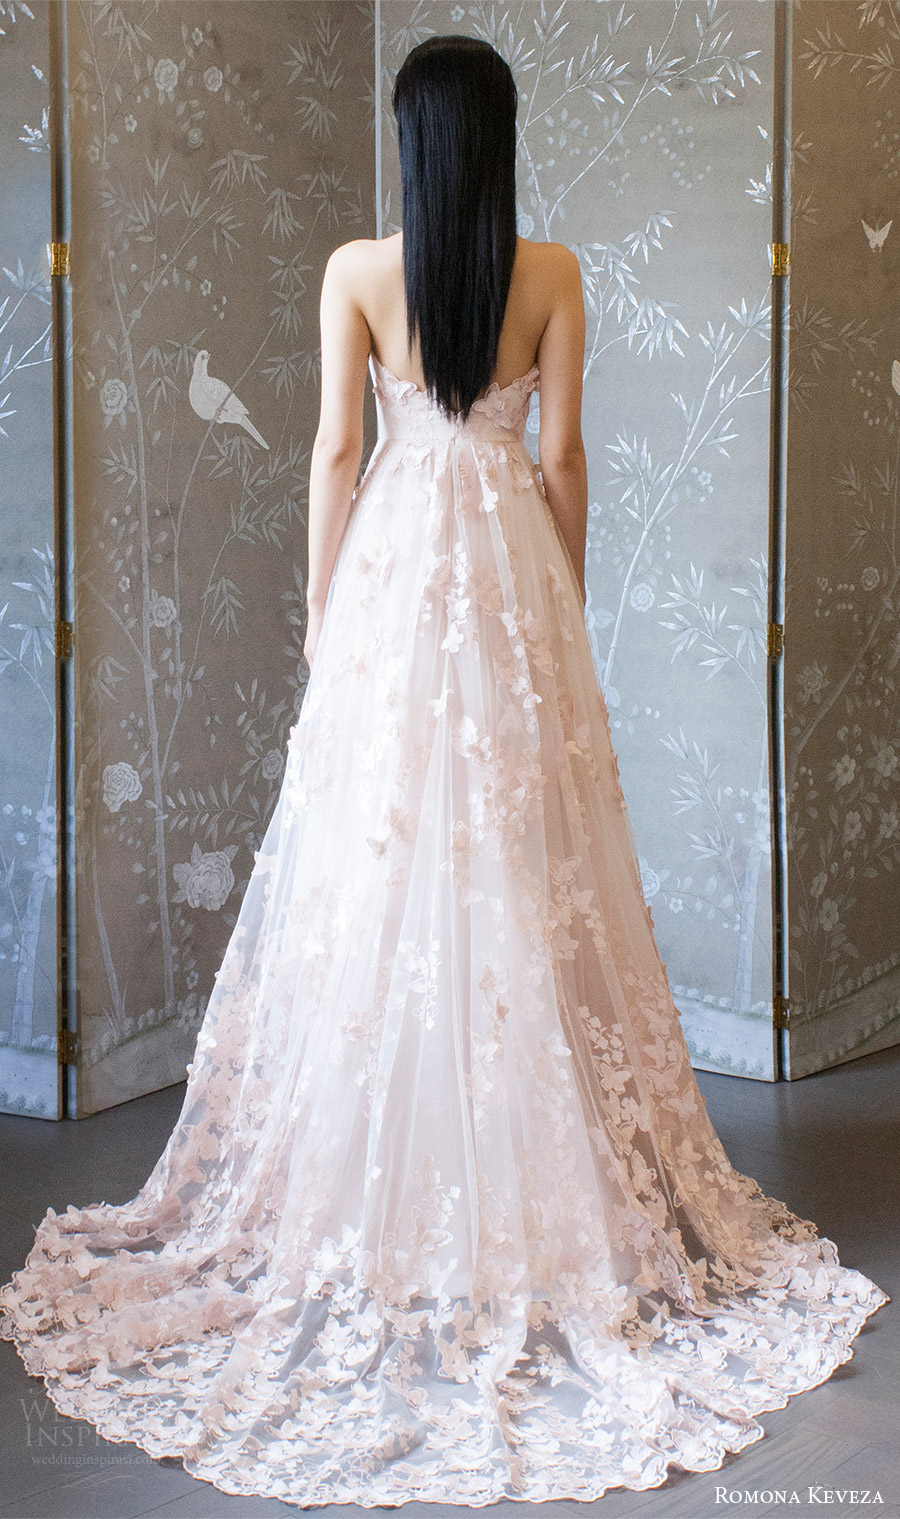 romona keveza spring 2018 bridal sleeveless halter deep v neck embellished lace a line wedding dress (rk8405) bv blush color romantic train